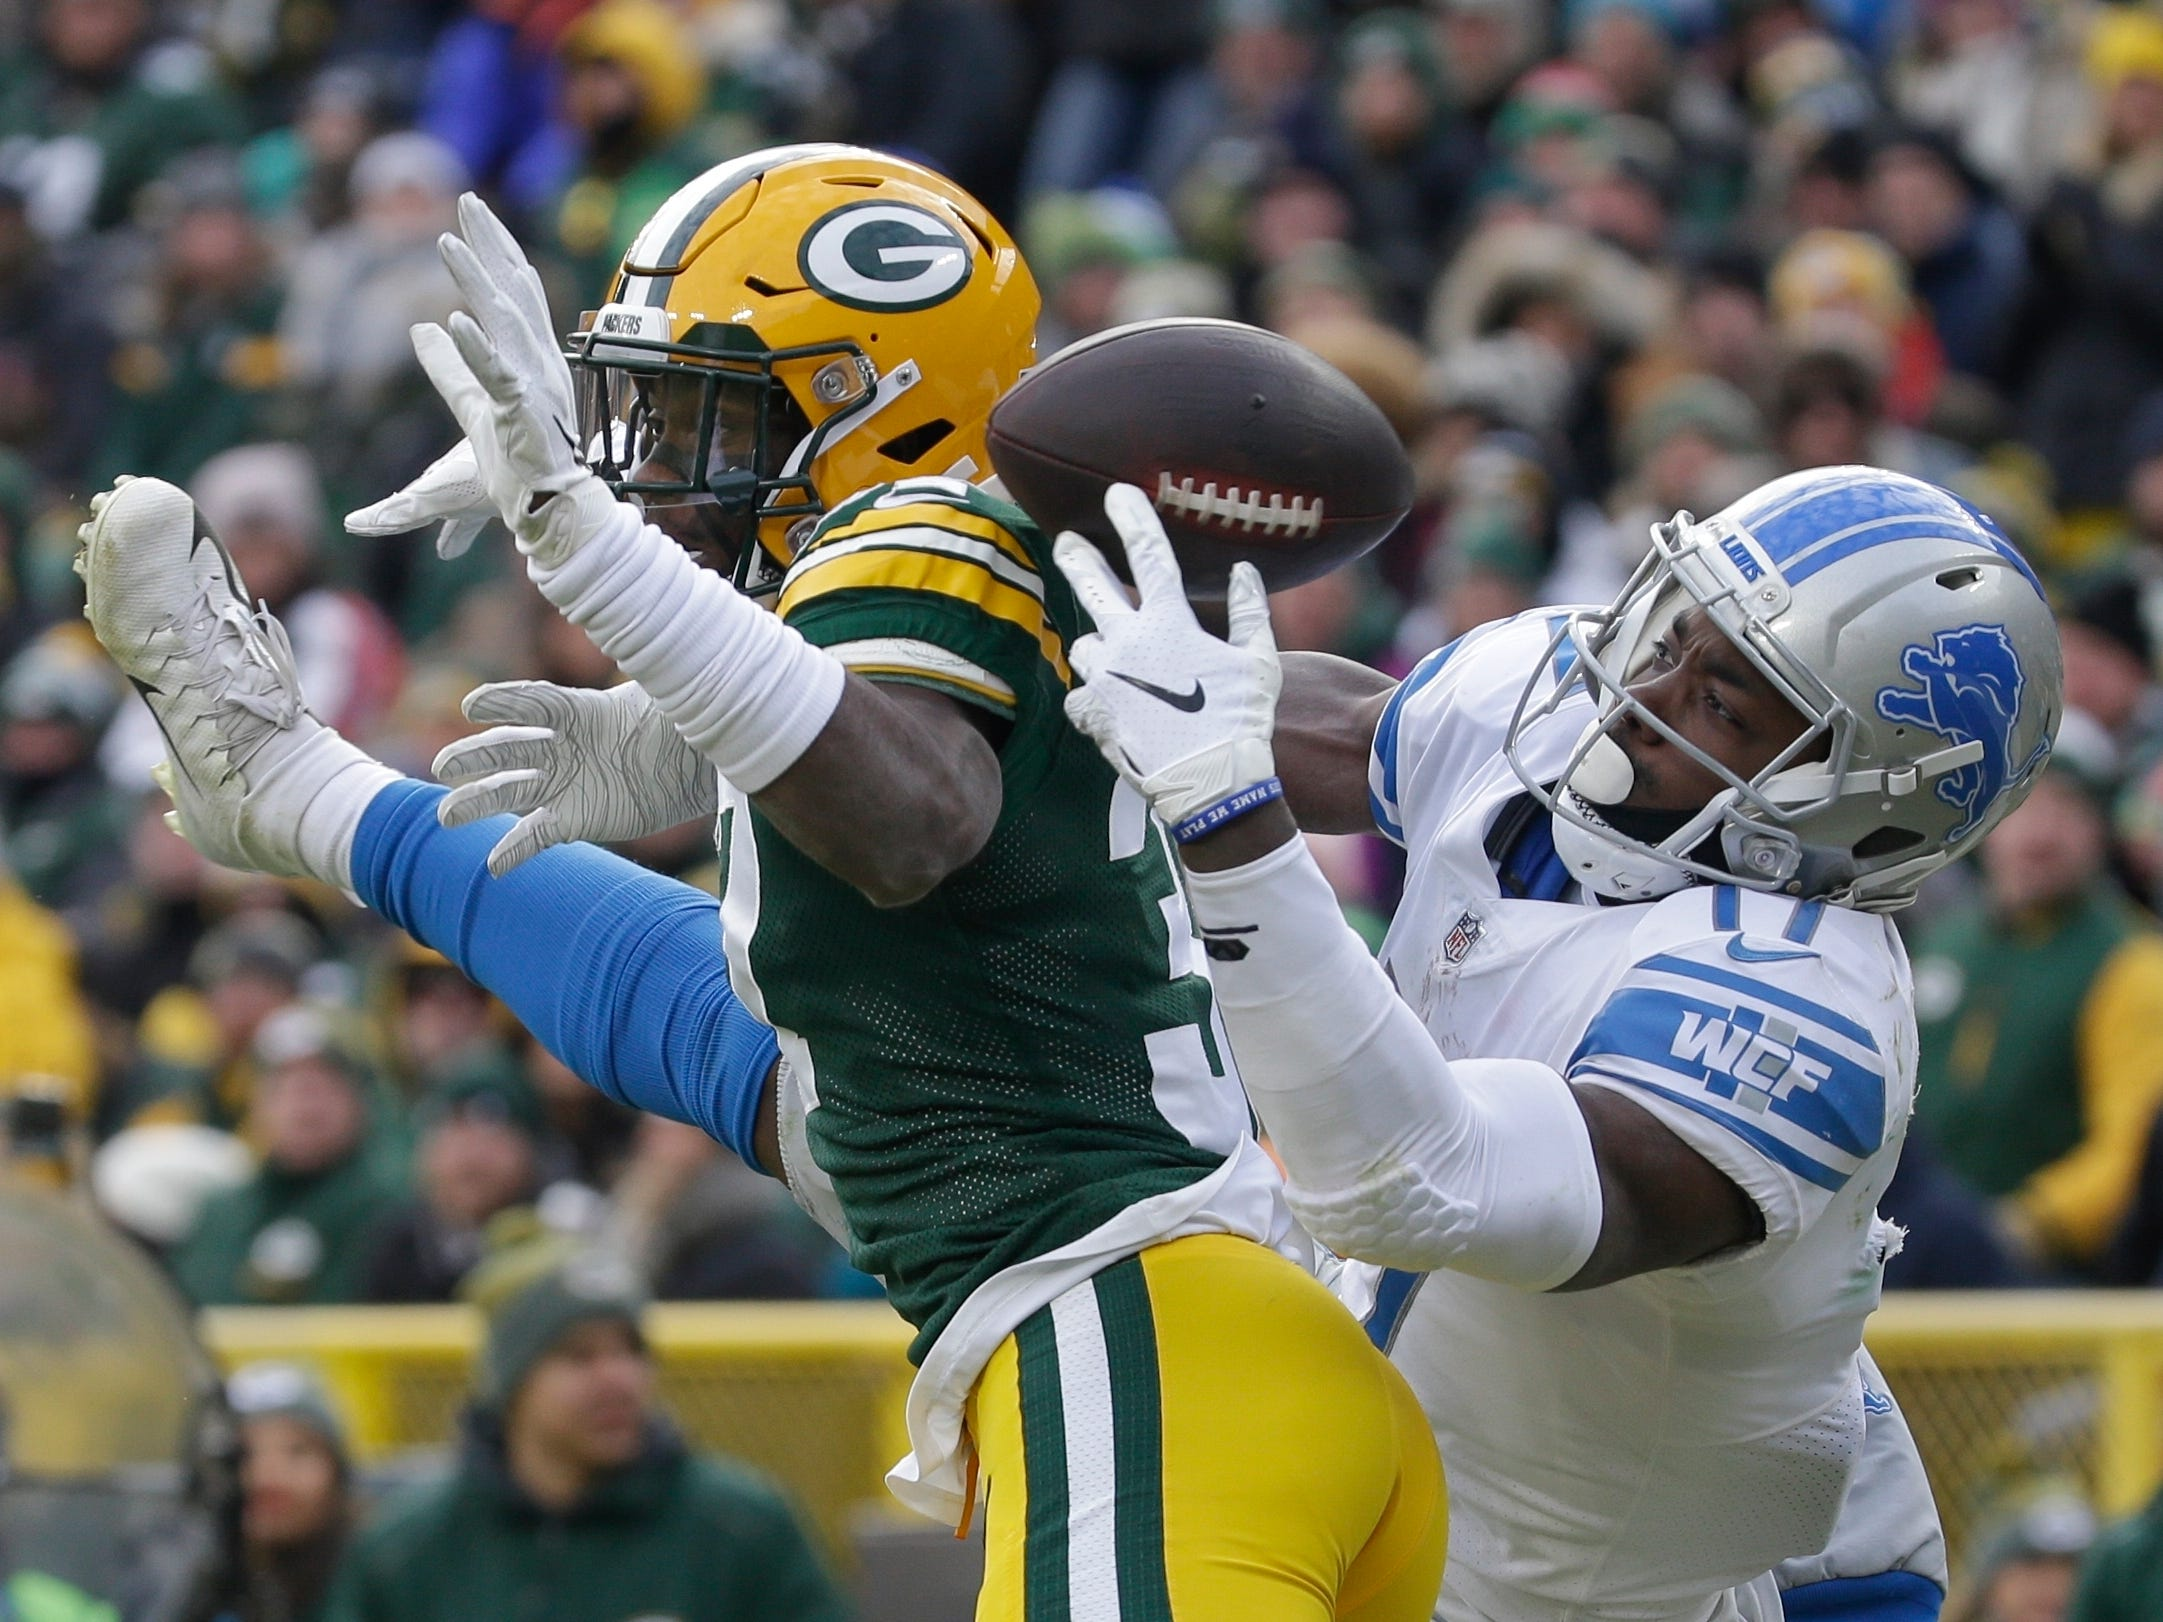 Green Bay's Josh Jackson breaks up a pass intended for Detroit's Andy Jones during the second half Sunday, Dec. 30, 2018, at Lambeau Field in Green Bay, Wis. The Lions won the season finale, 31-0.